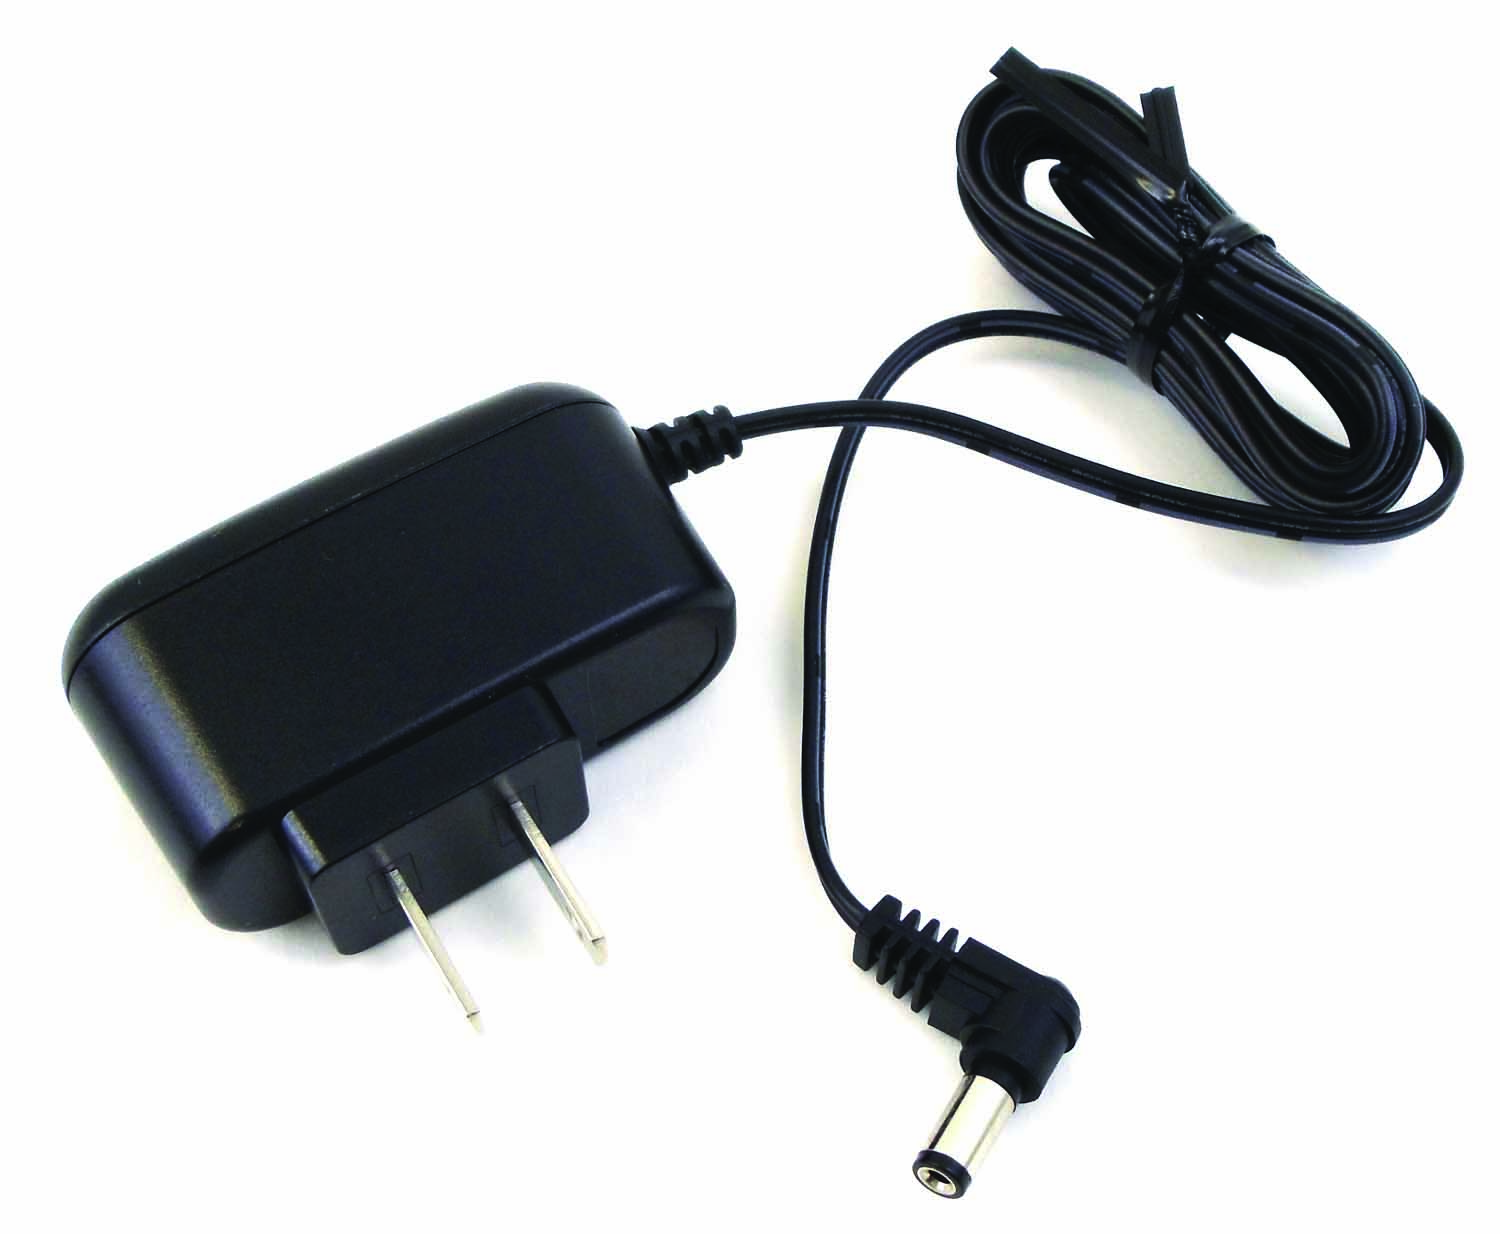 BADG1237001 - Uniden Bearcat Replacement AC Adapter For ATLANTIS270 Radio